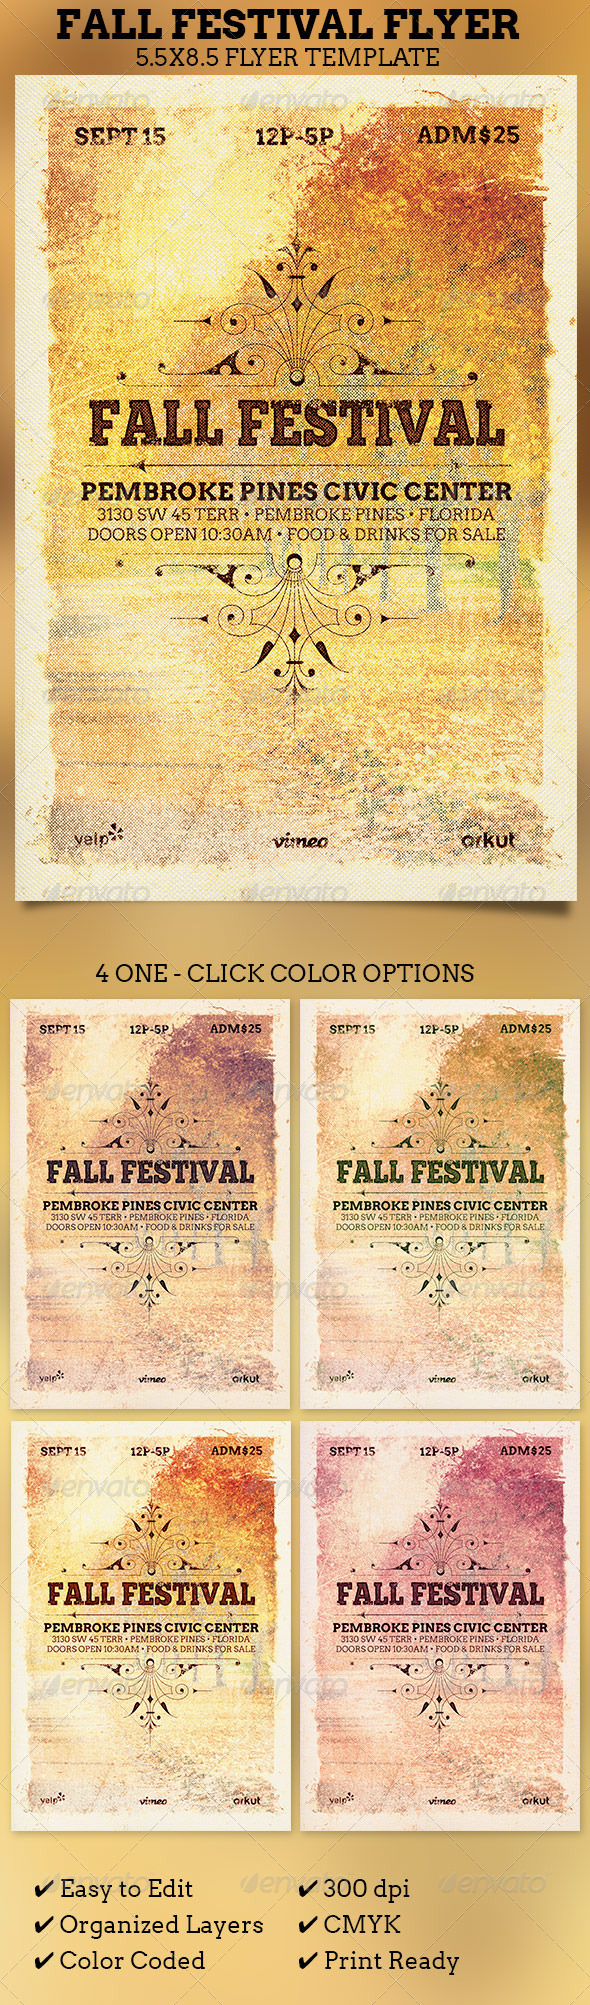 fall festival flyer template by 4cgraphic graphicriver